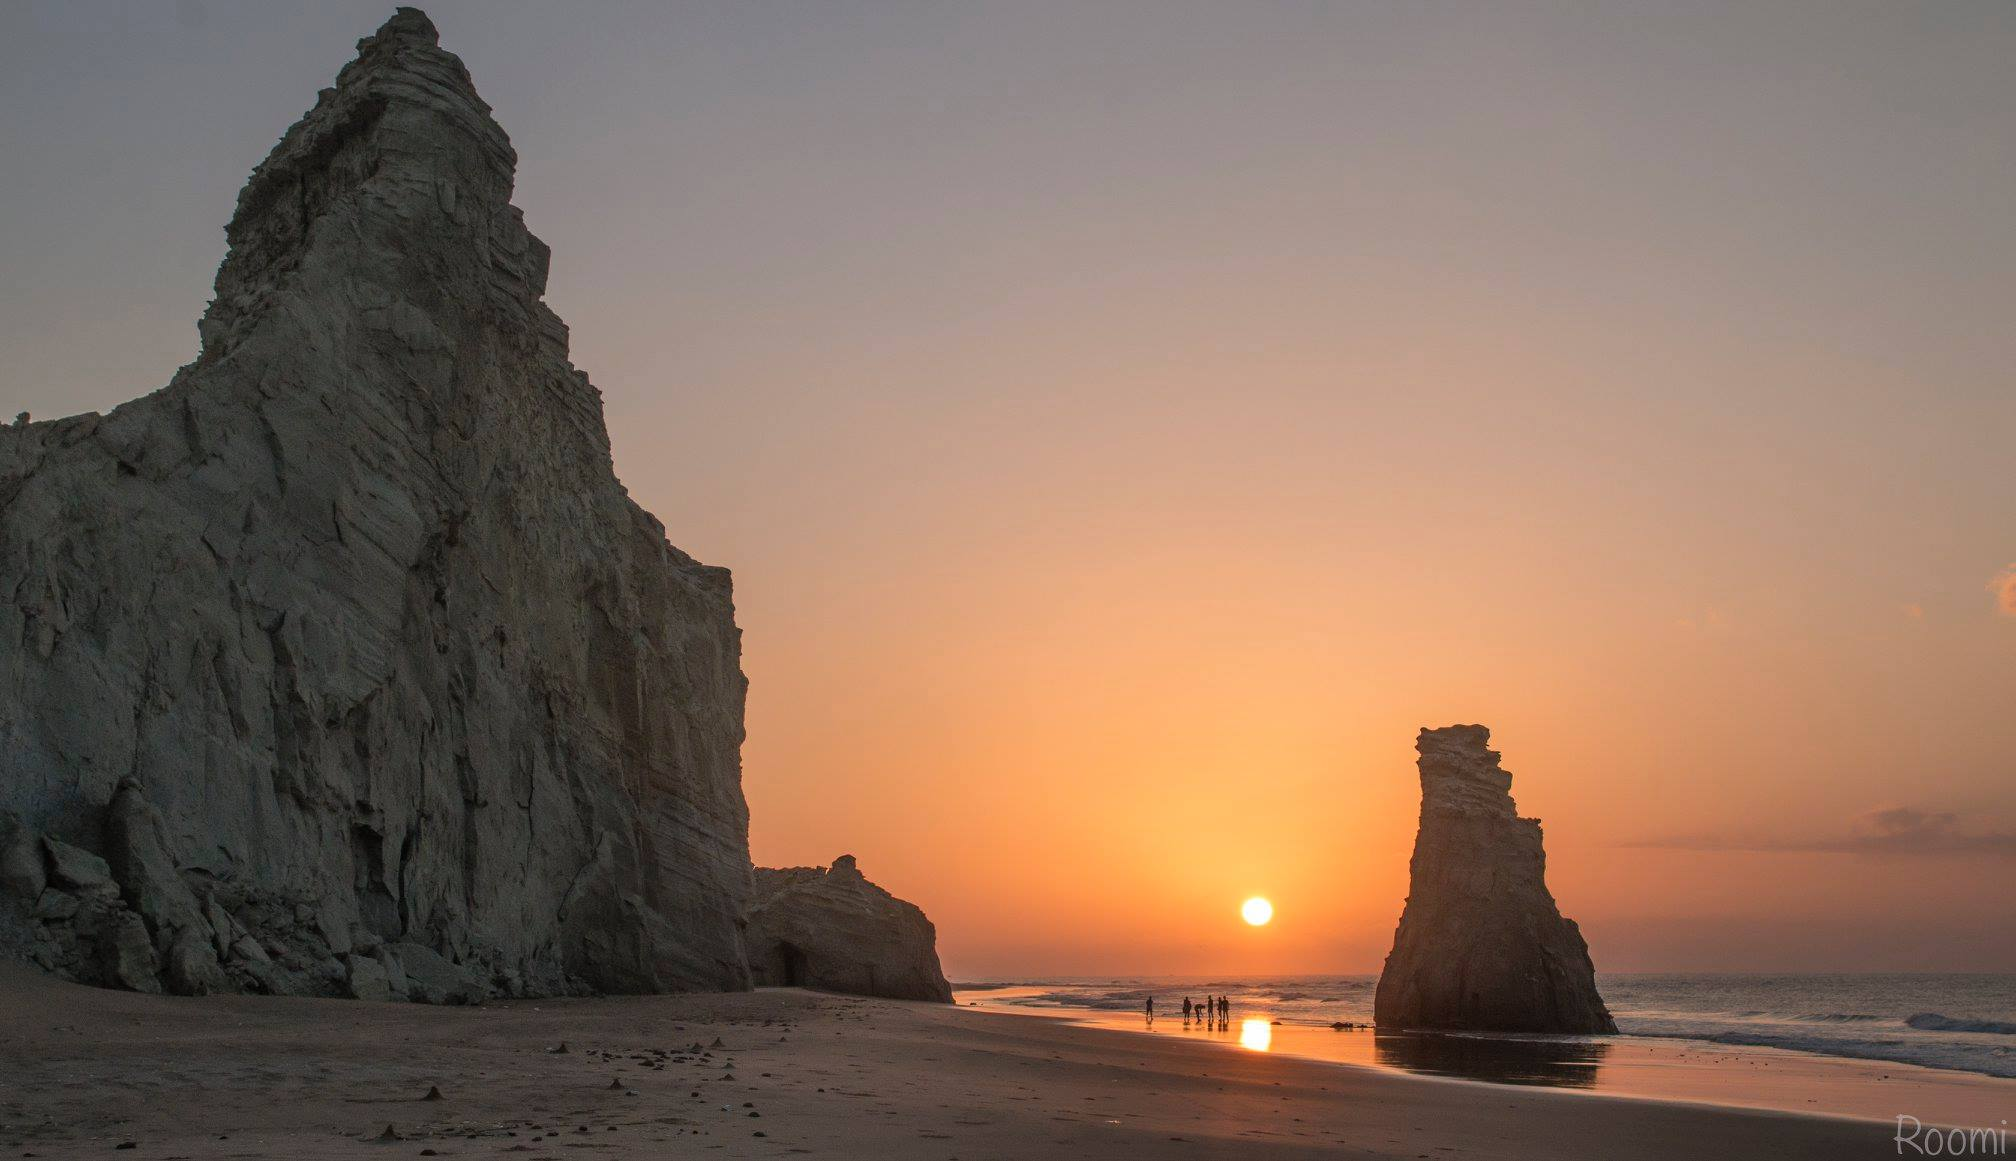 Golden Sun and Sky effect at evening, Sapat Beach Balochistan Pakistan